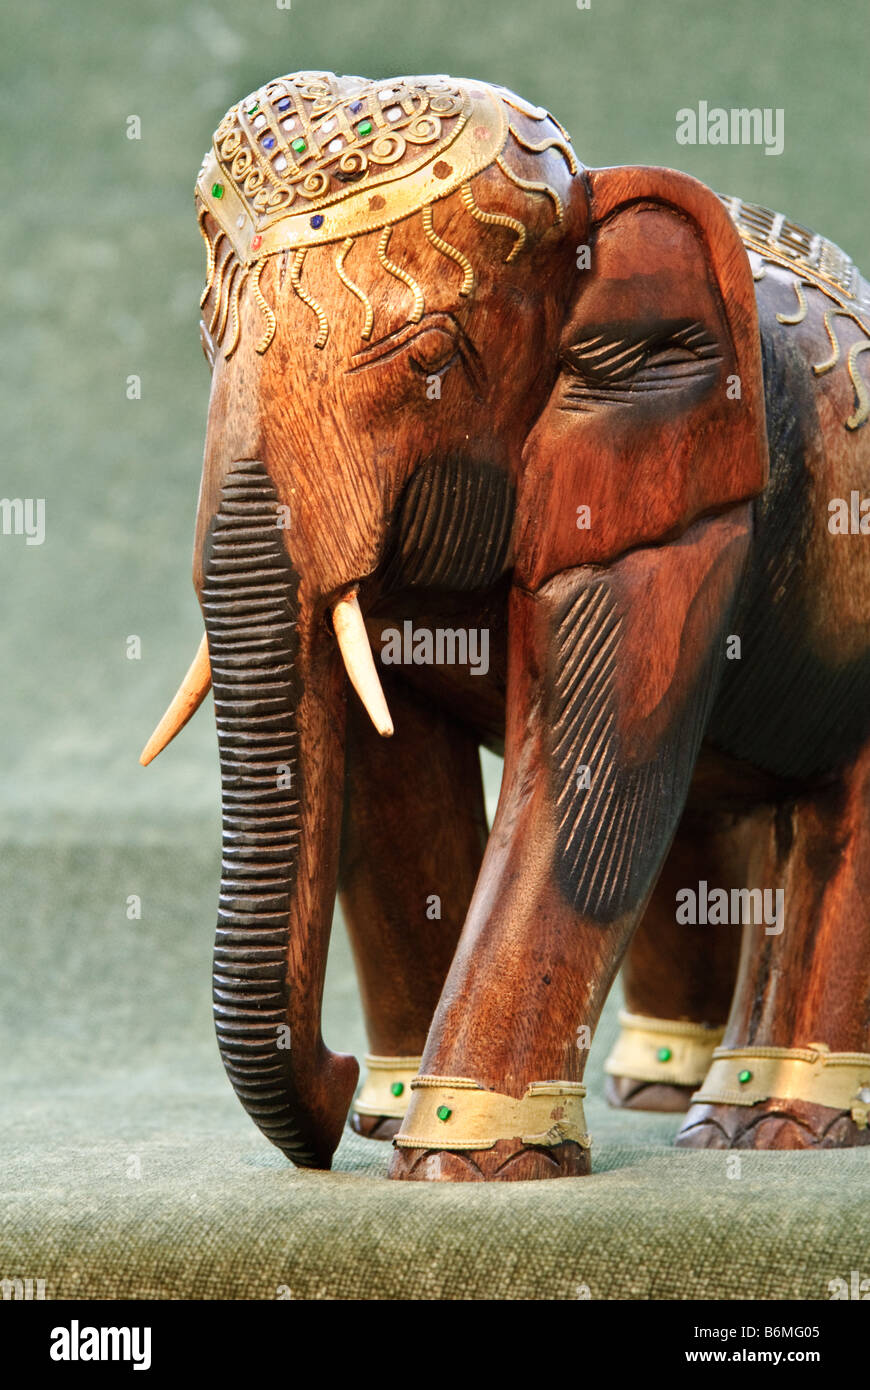 Wooden carved elephant - Stock Image